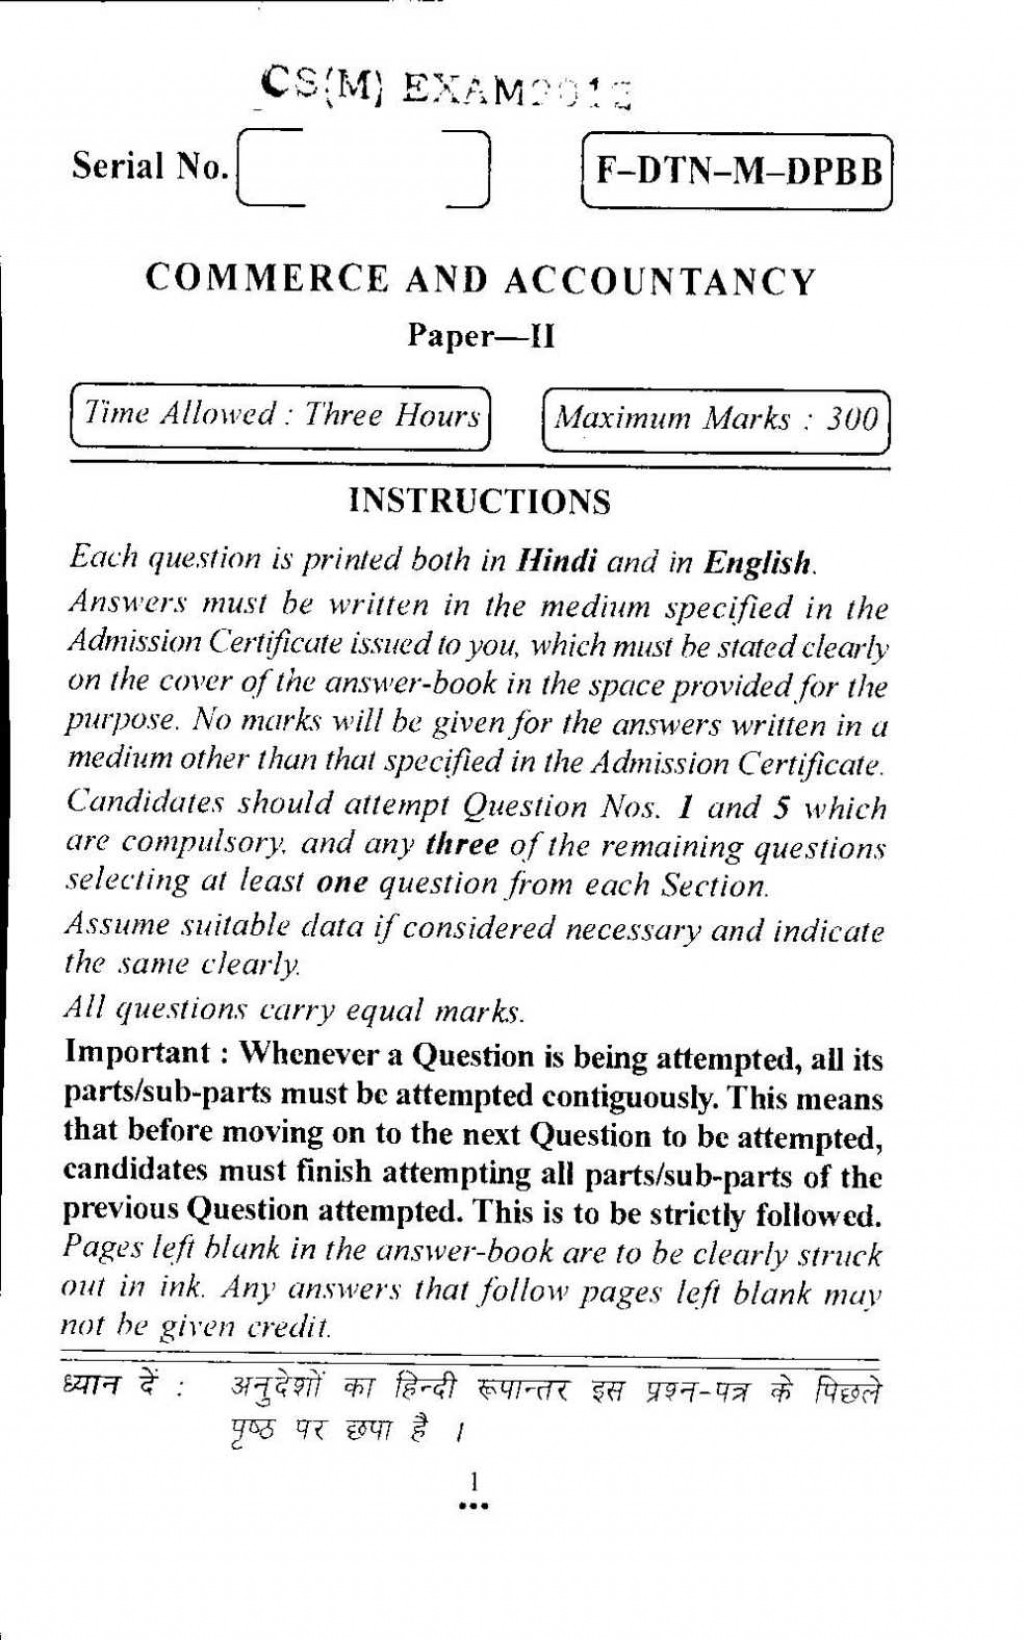 011 Civil Services Examination Commerce And Accountancy Paper Ii Previous Years Que Essay Example Marvelous Racism Tkam Pdf In Othello Free Large